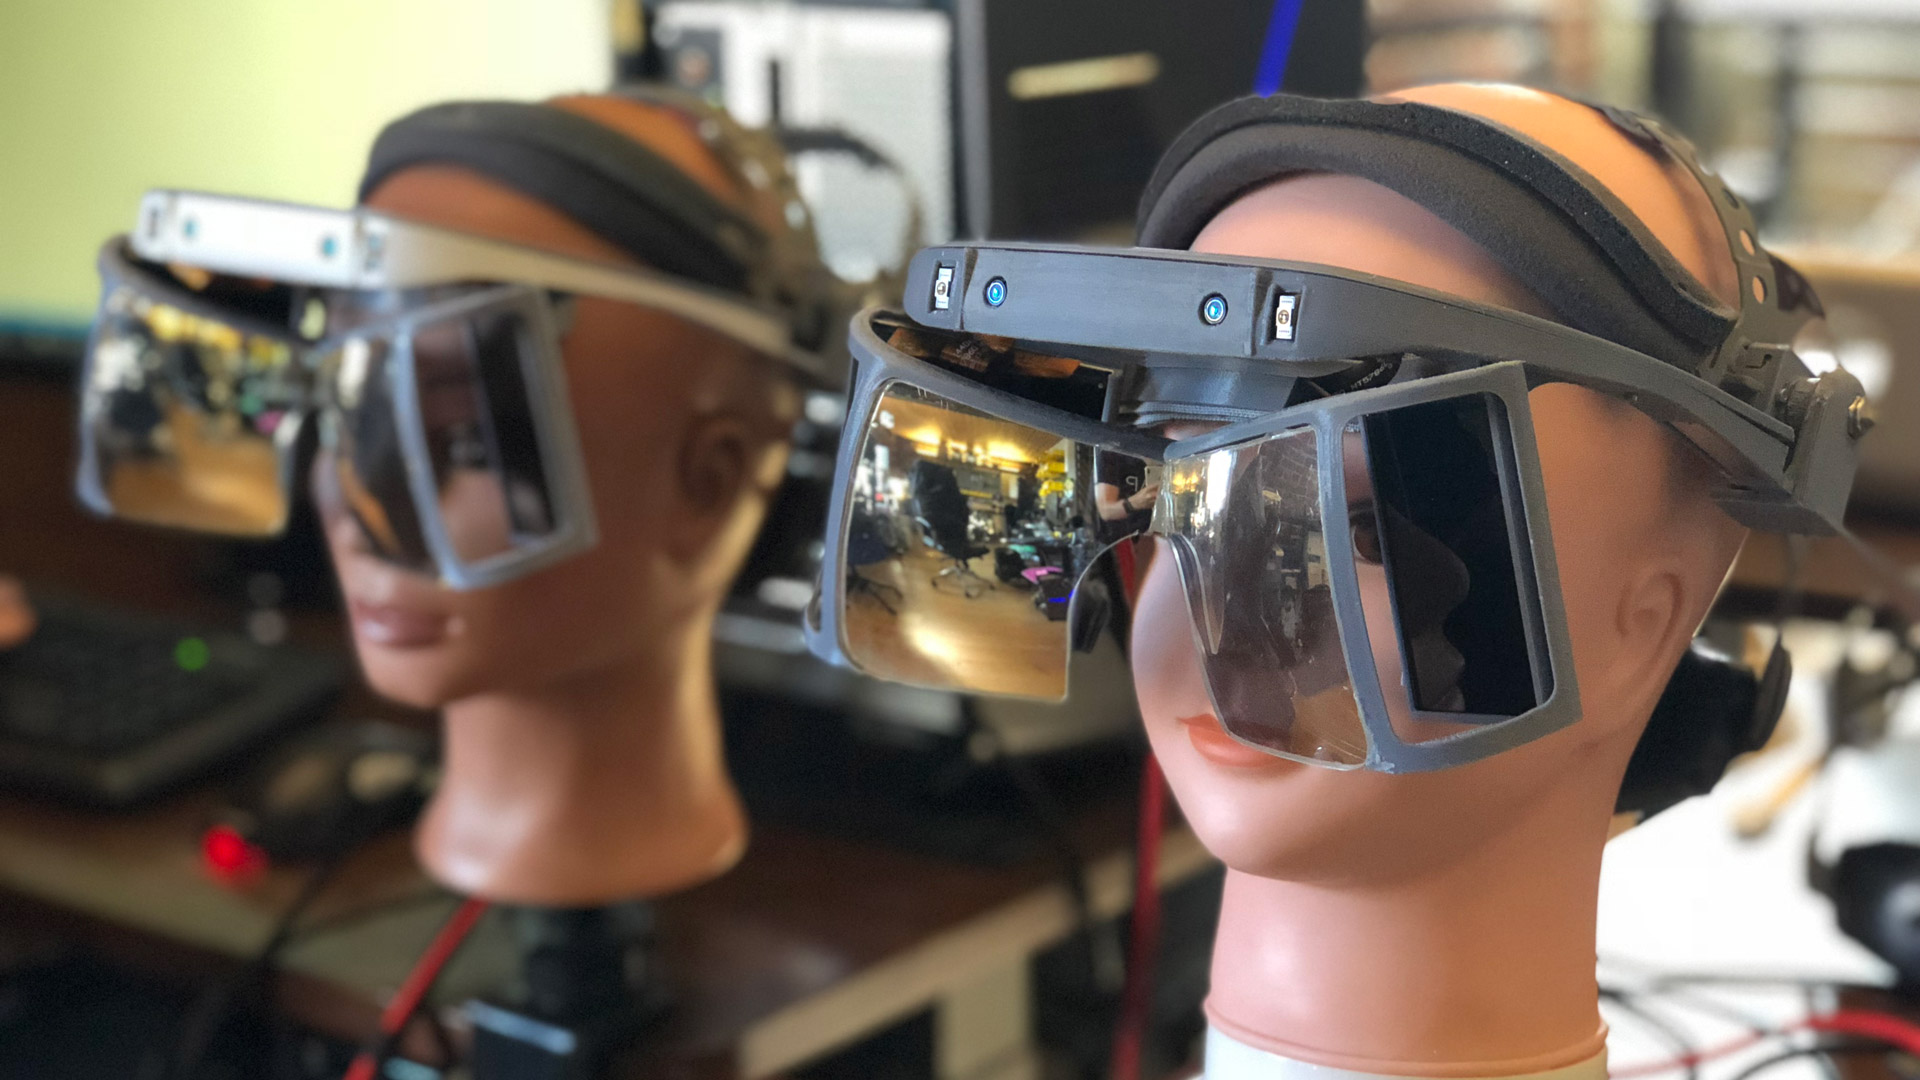 Leap Motion Open-sources Project North Star, An AR Headset